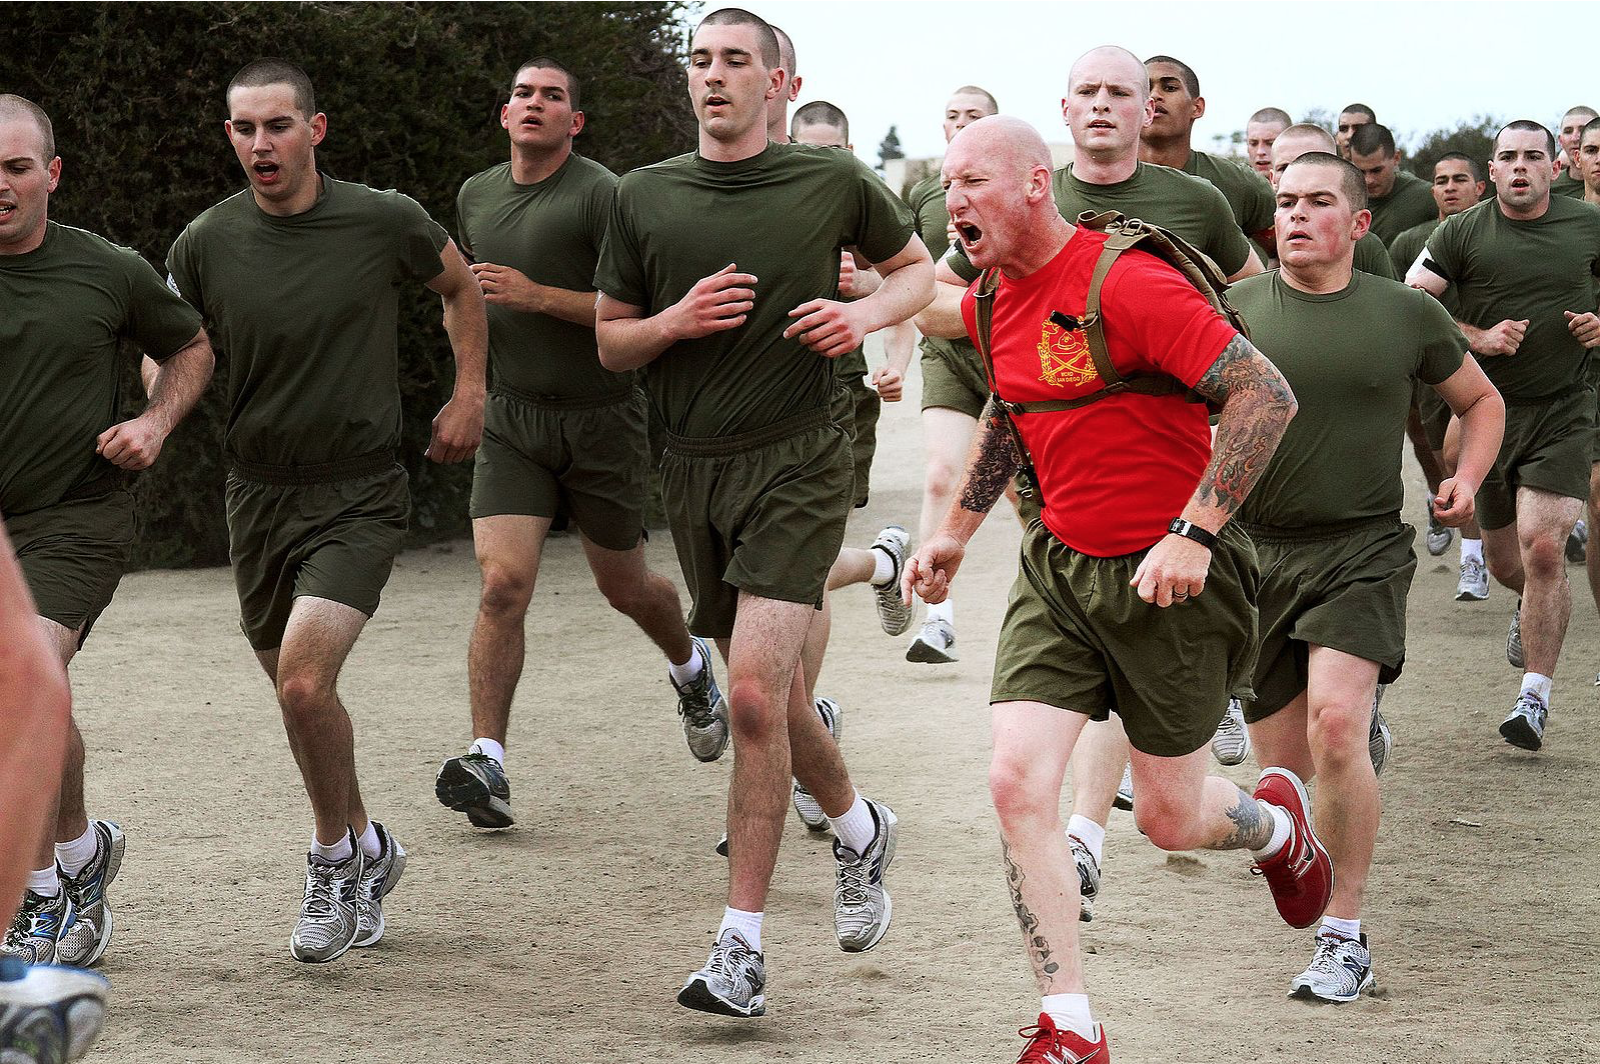 Drill instructors of Company C encourage recruits to exert maximum effort